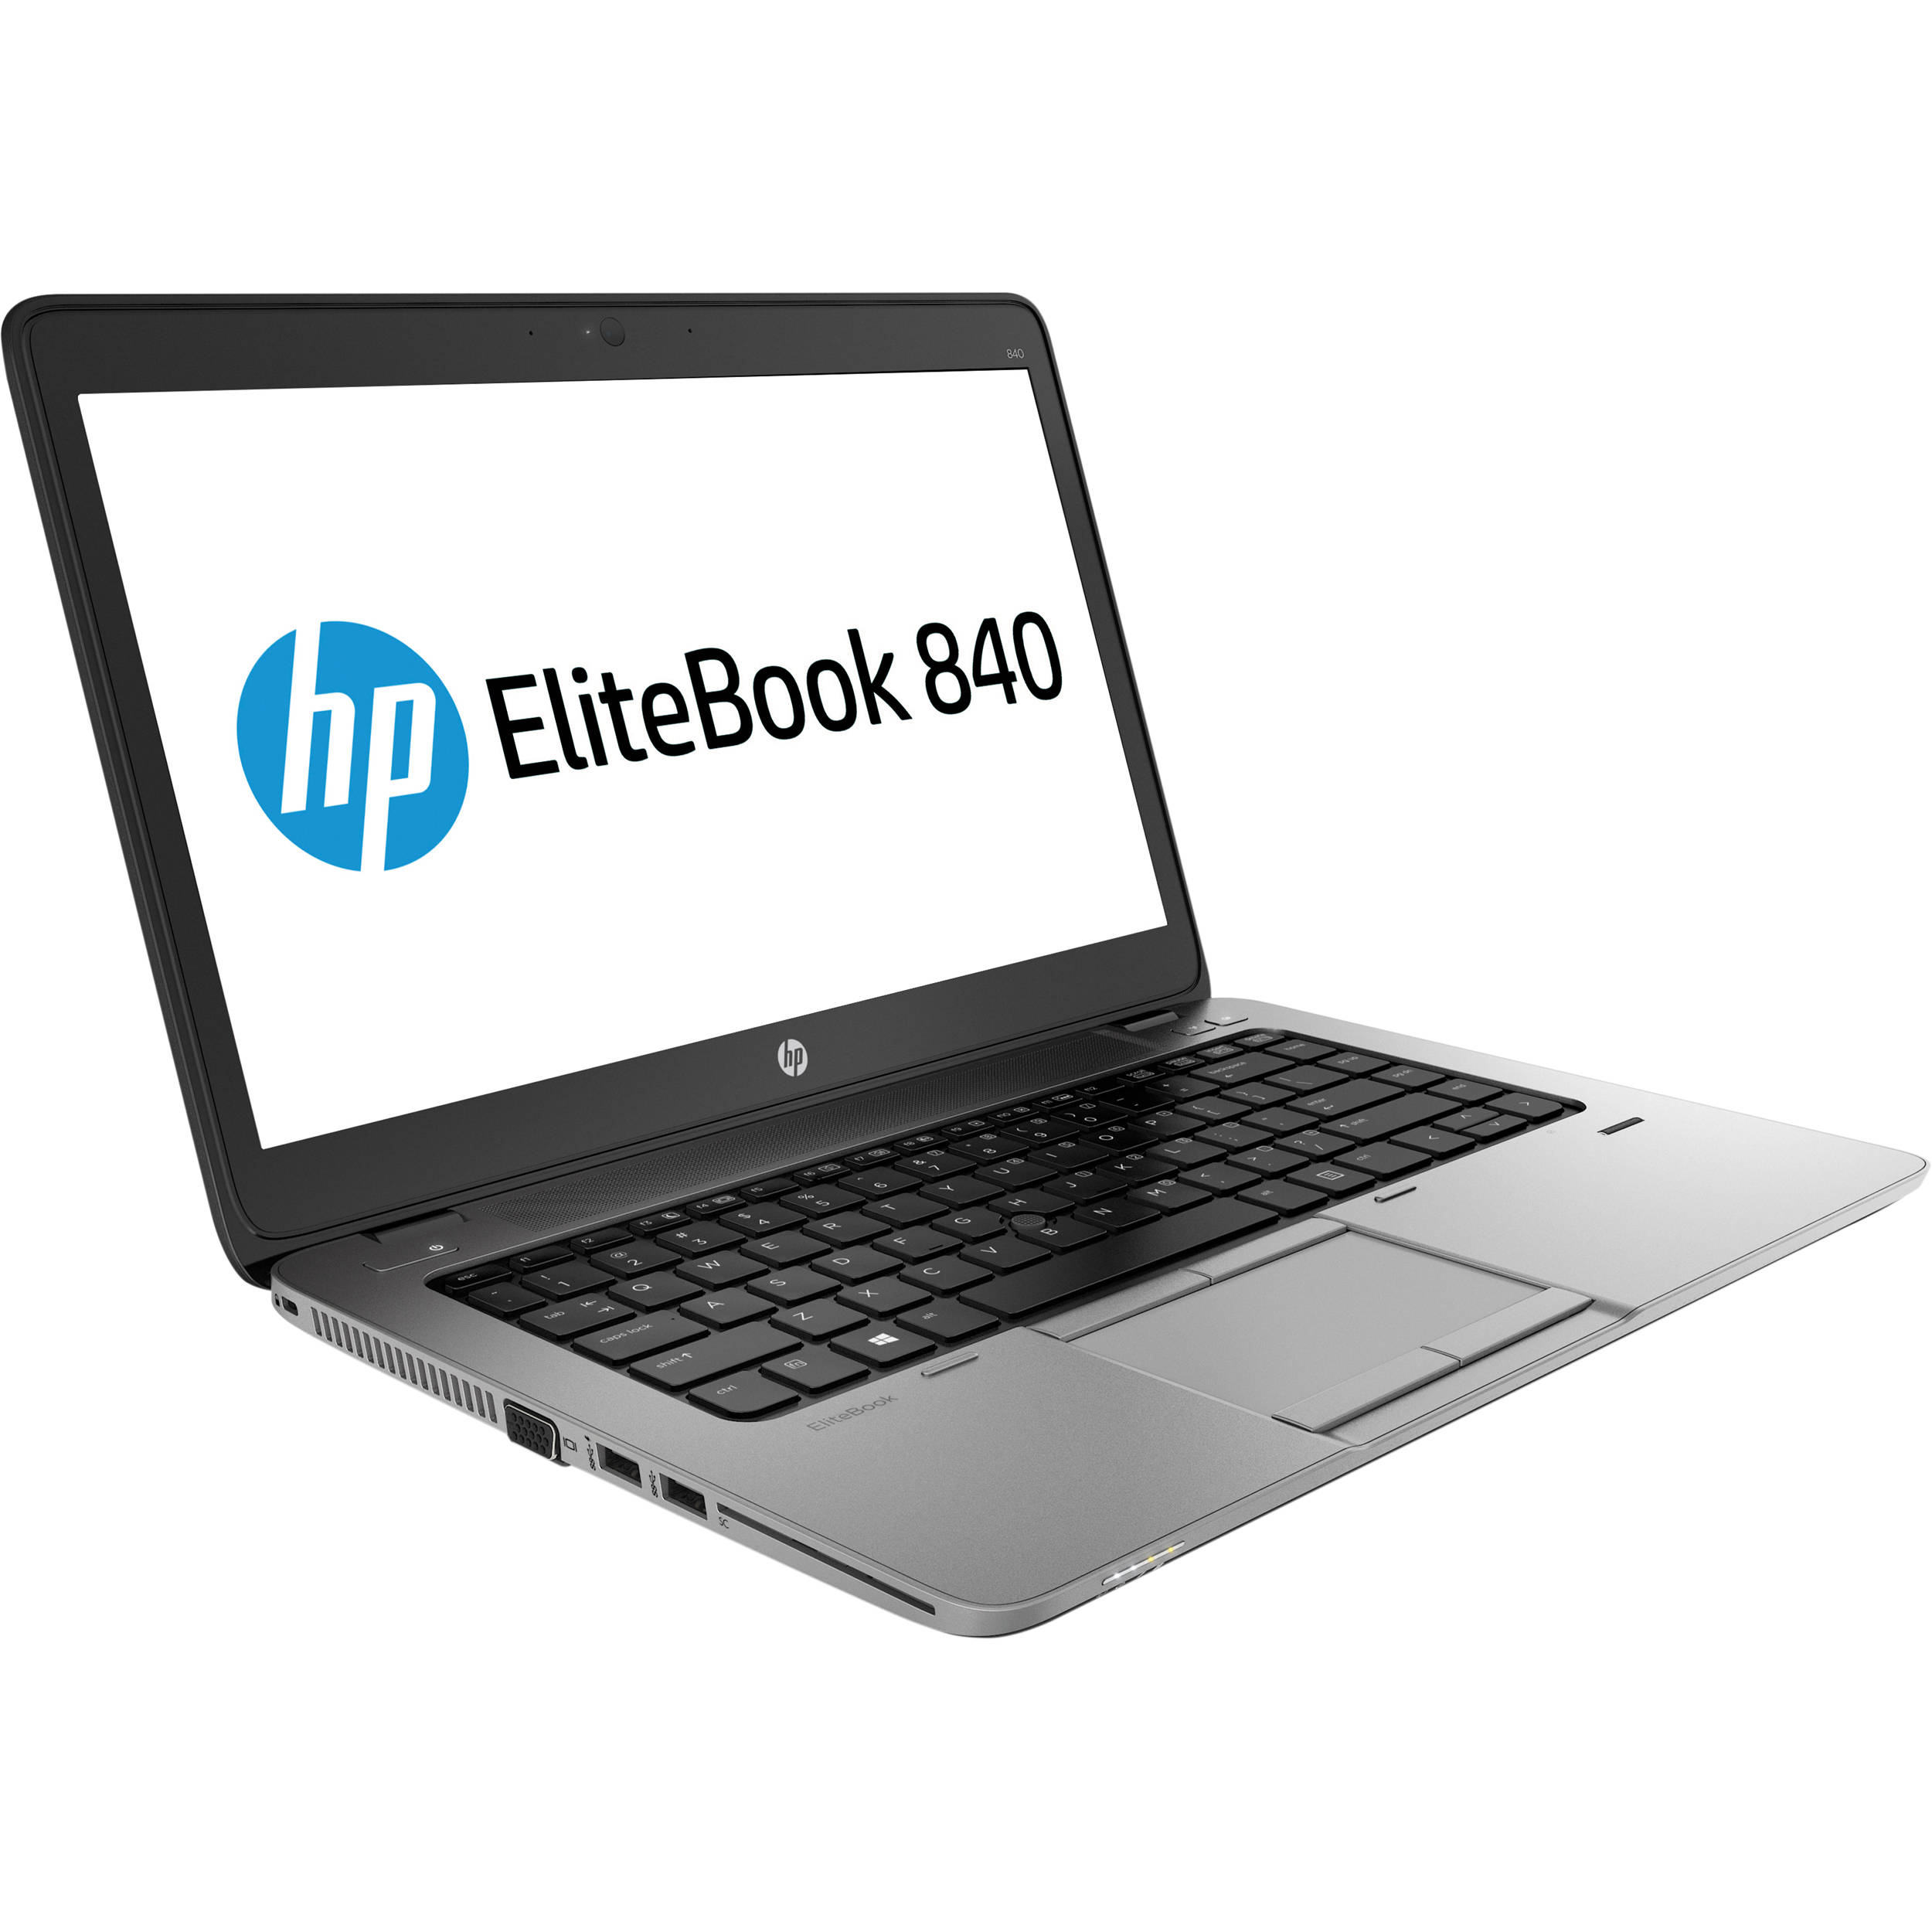 HP EliteBook 840 G1 Universal Camera Drivers for PC